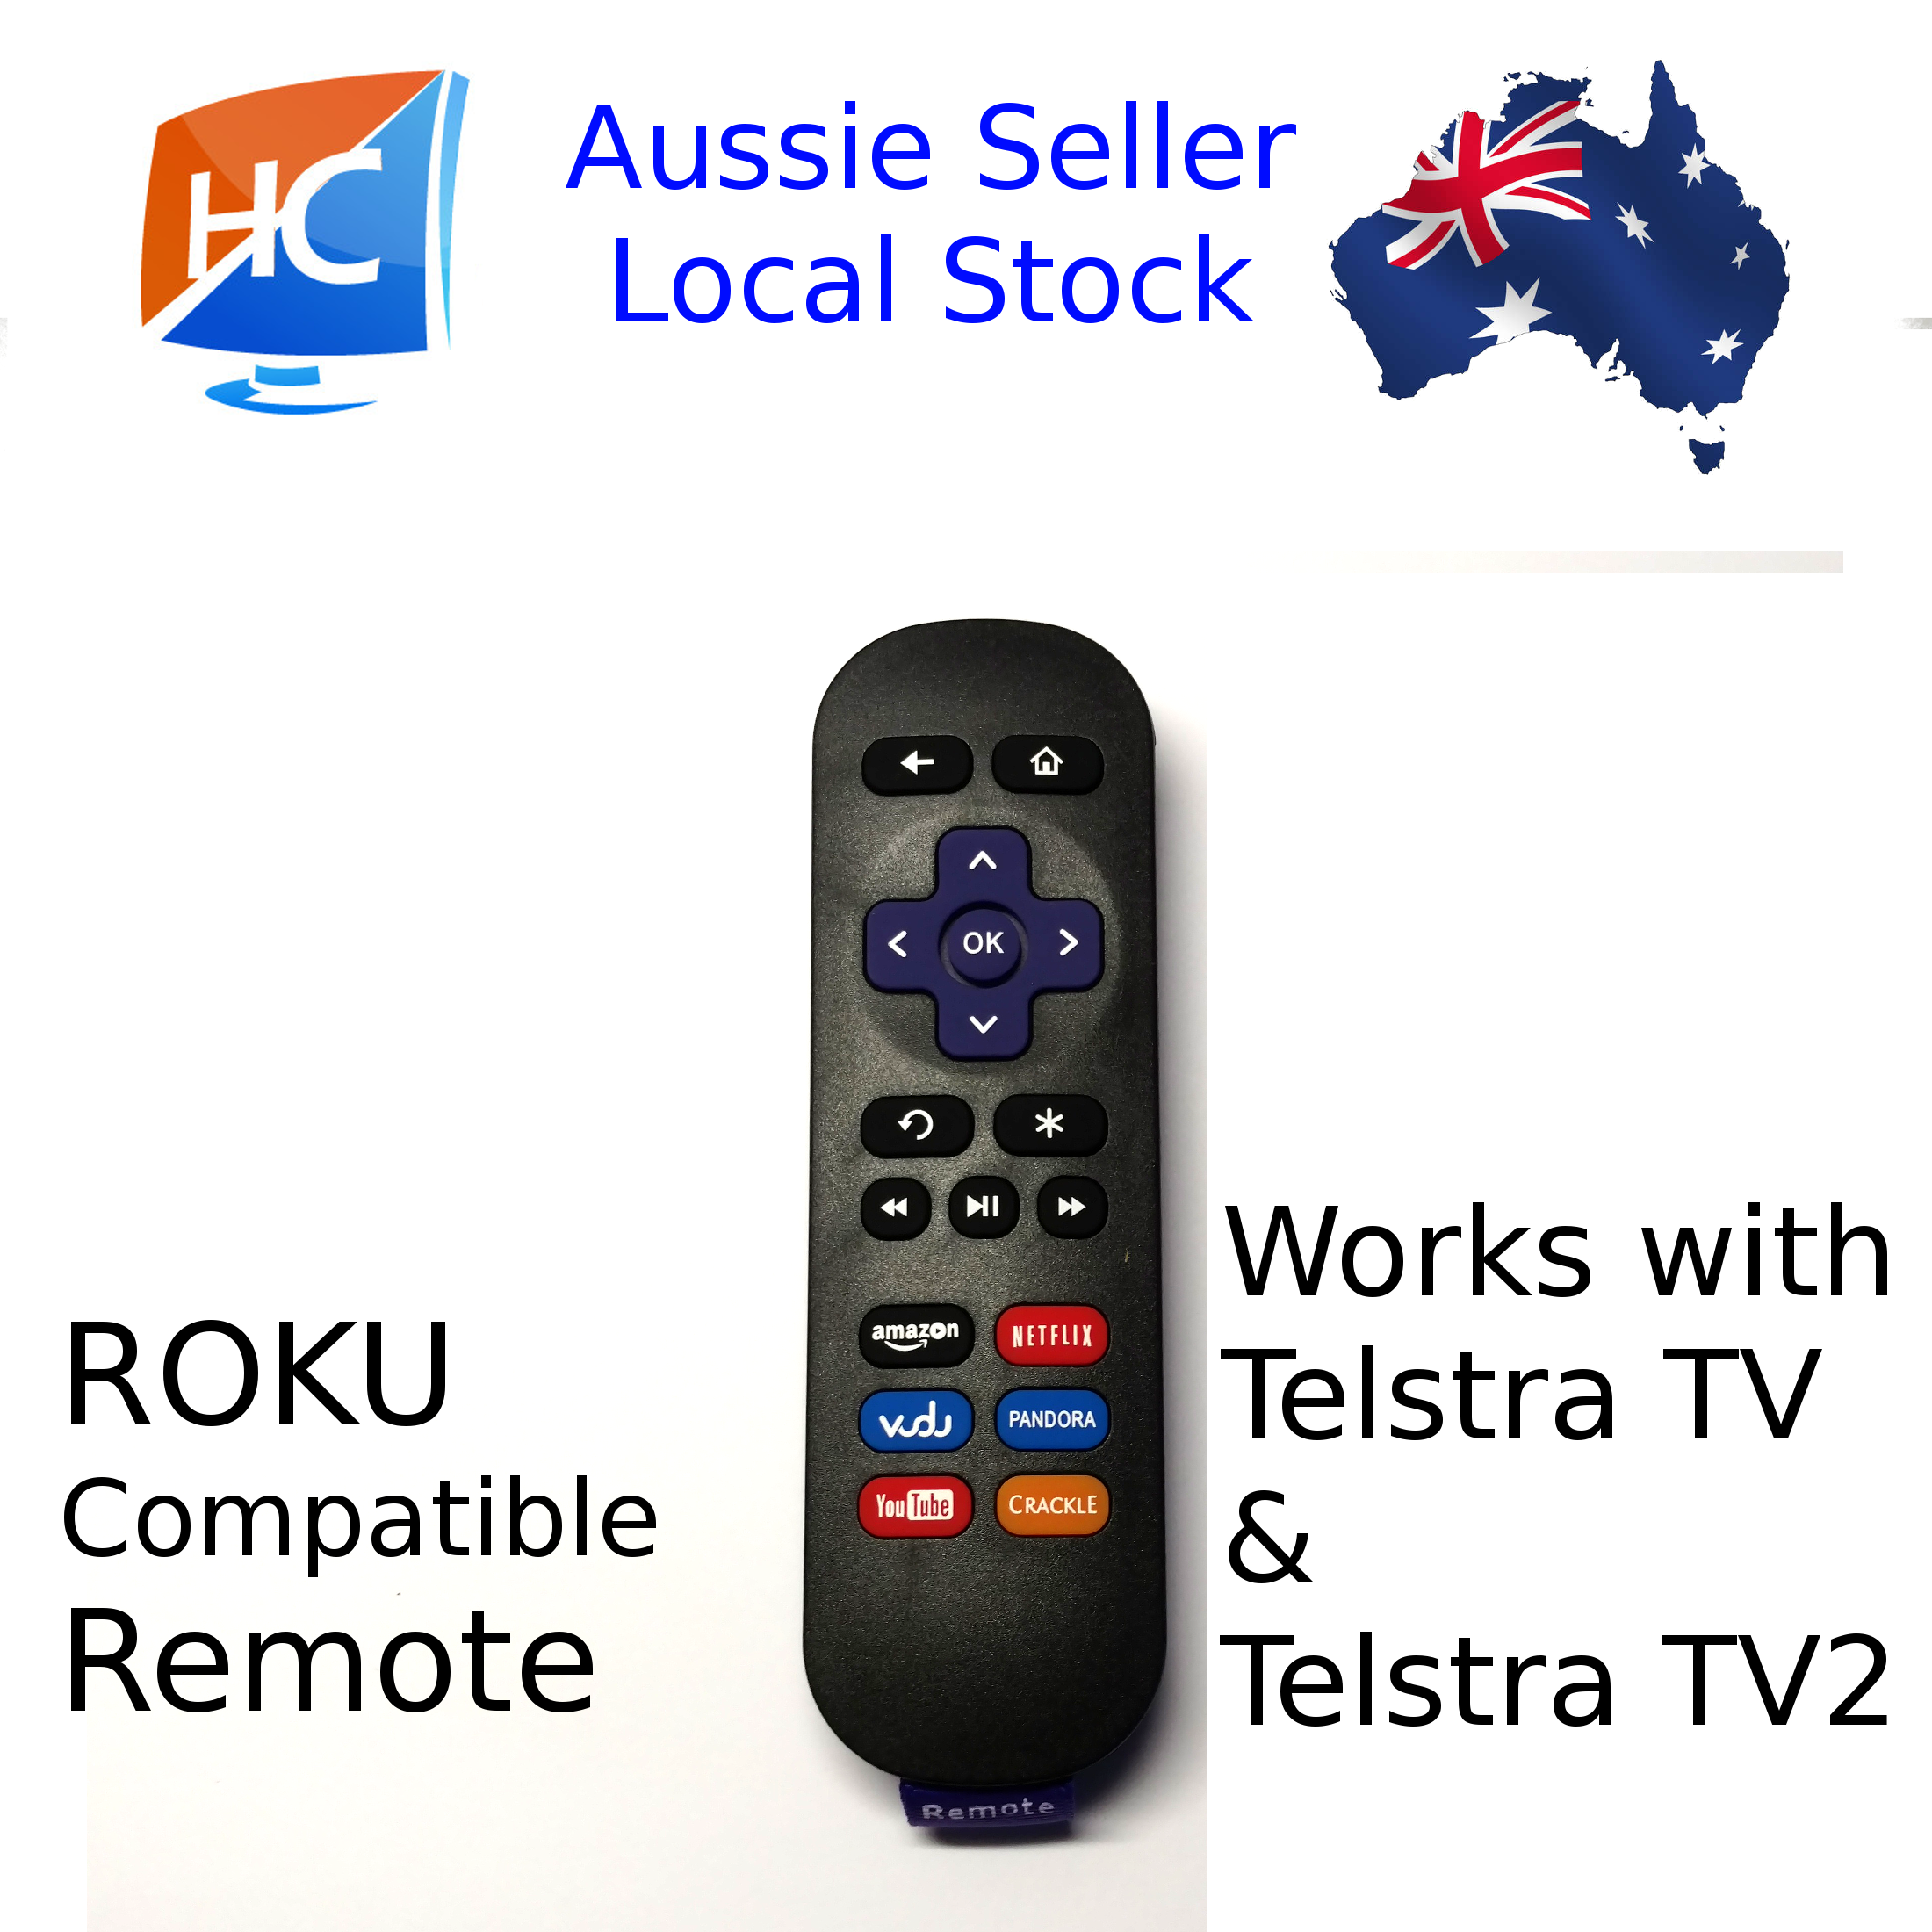 Telstra TV & TV2 Compatible Roku Remote